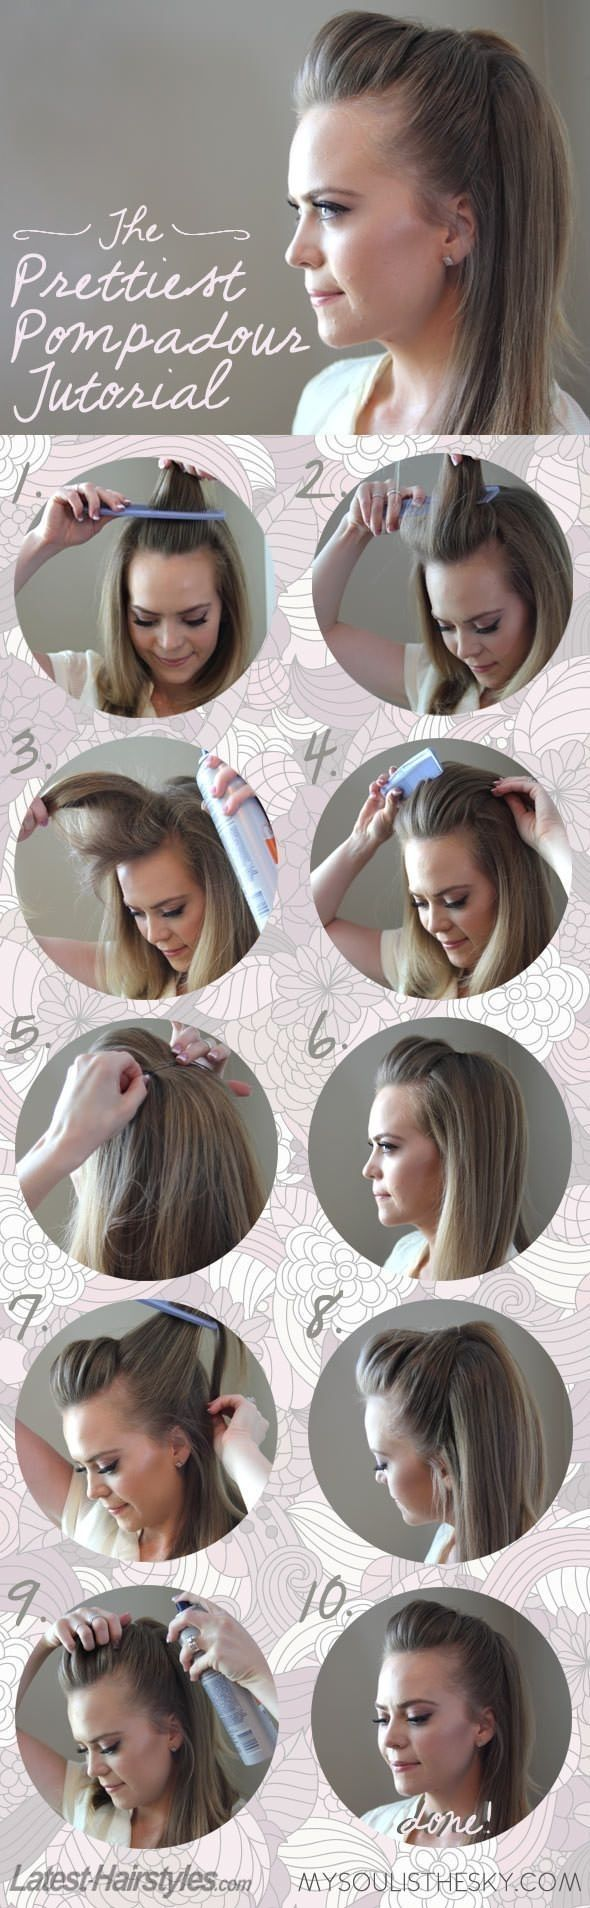 The easiest prettiest pompadour updo woman hairstyles and easy updo